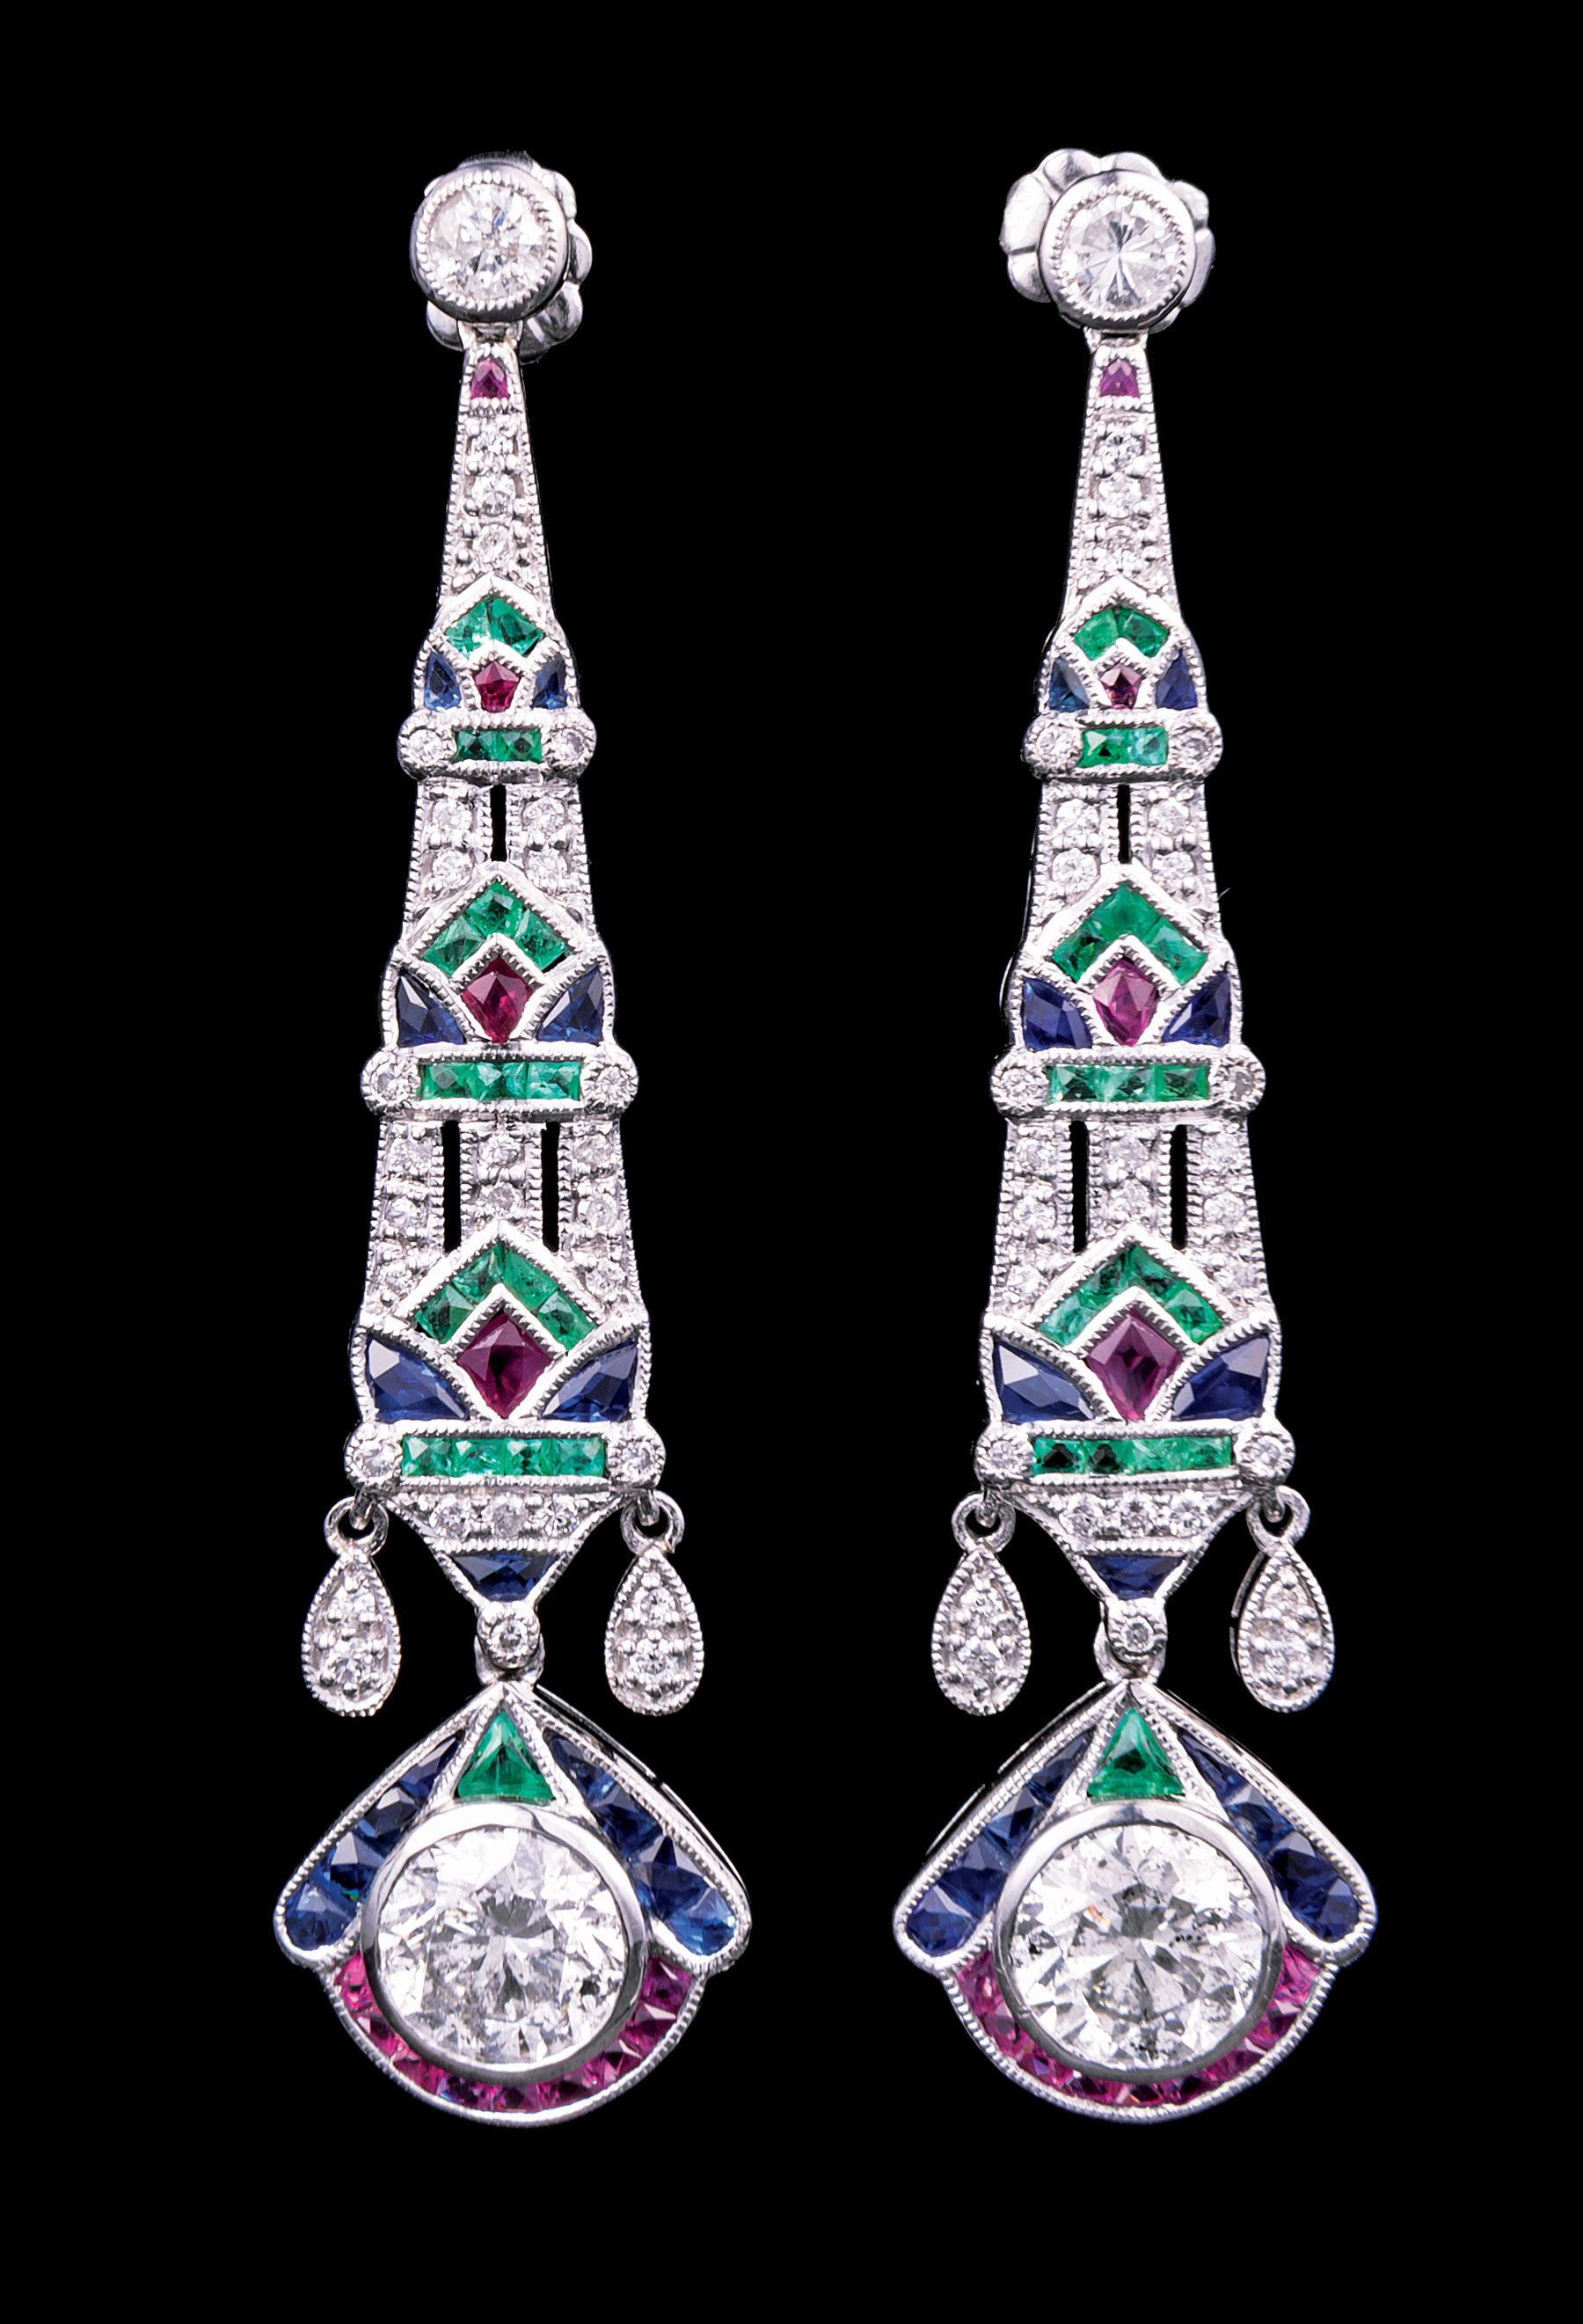 Lot 616 - Pair of Art Deco-Style Platinum, Ruby, Sapphire, Emerald and Diamond Dangle Earrings , 2 larger drop